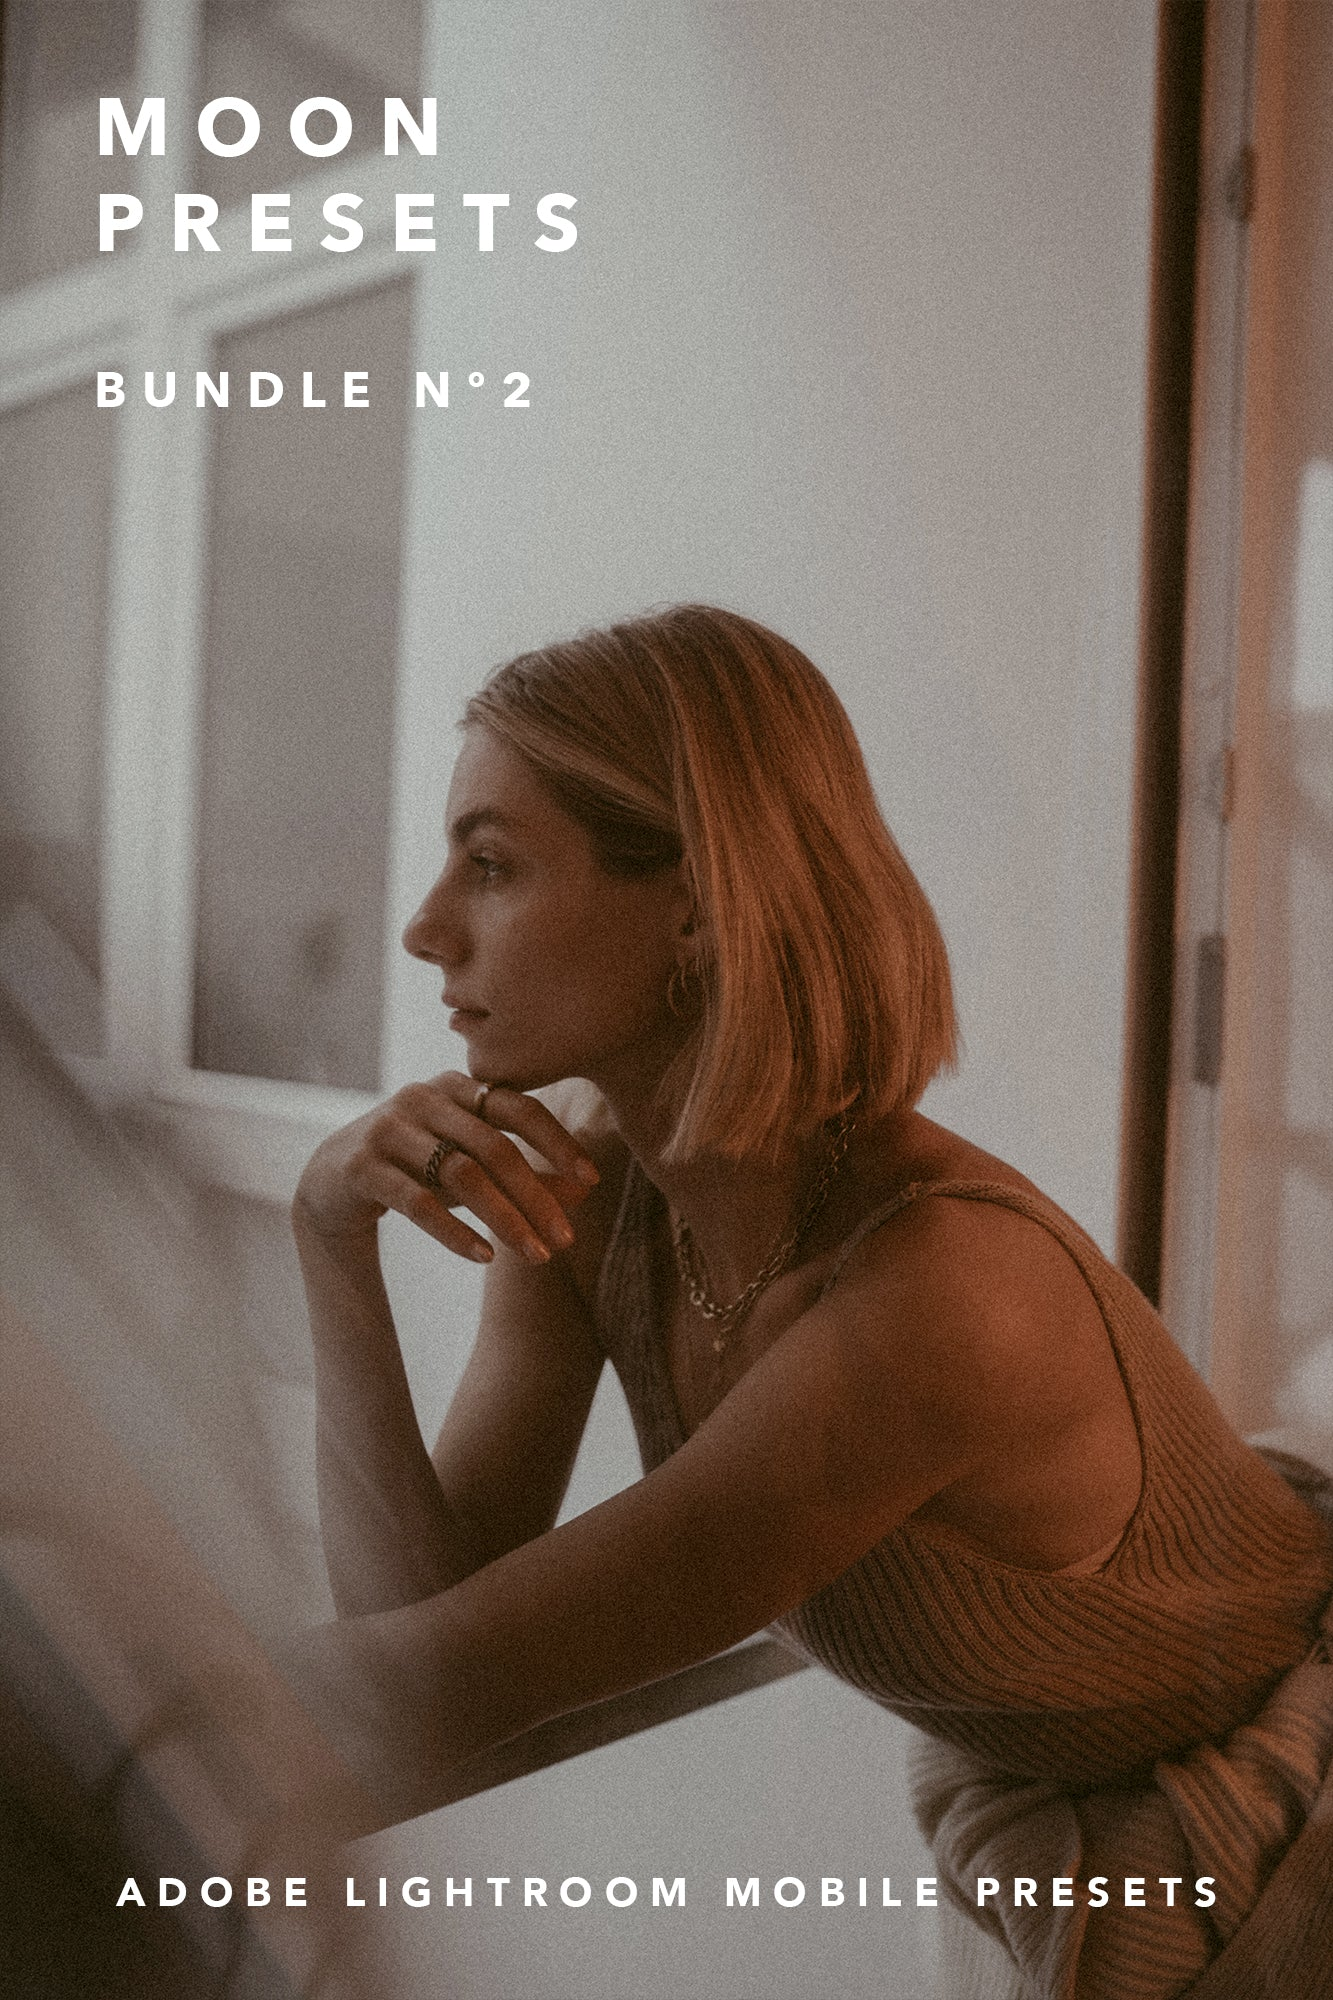 Justine Moon Preset Bundle